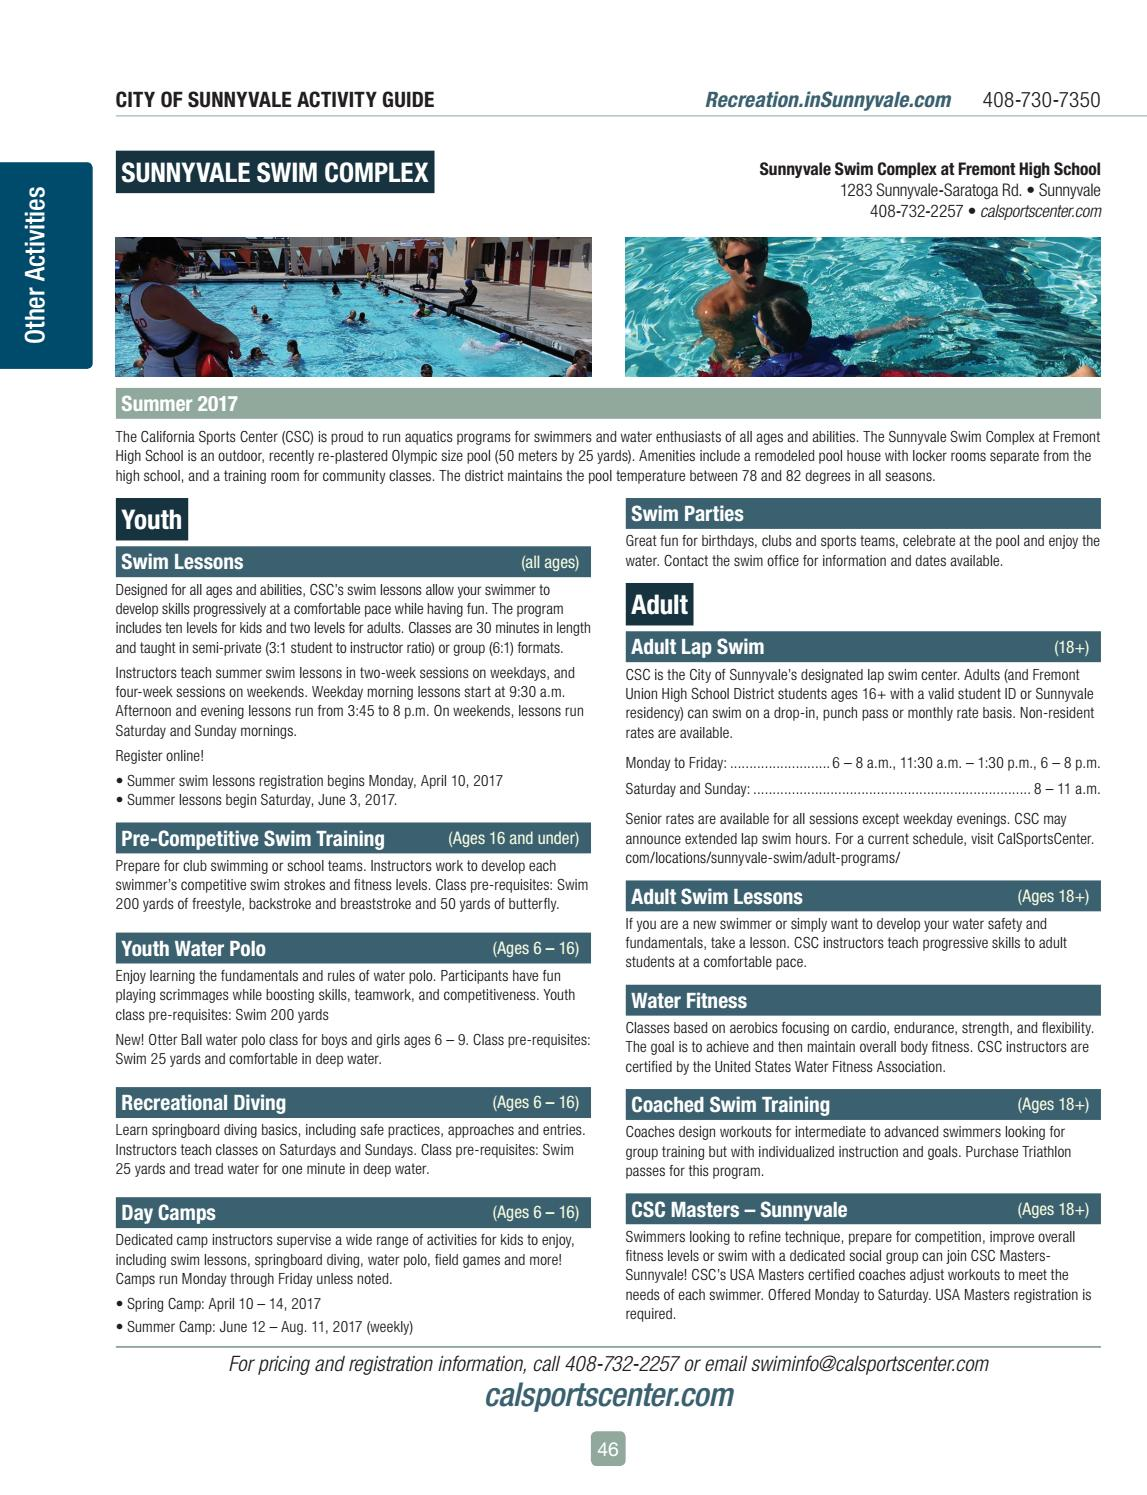 8 and under swim workouts